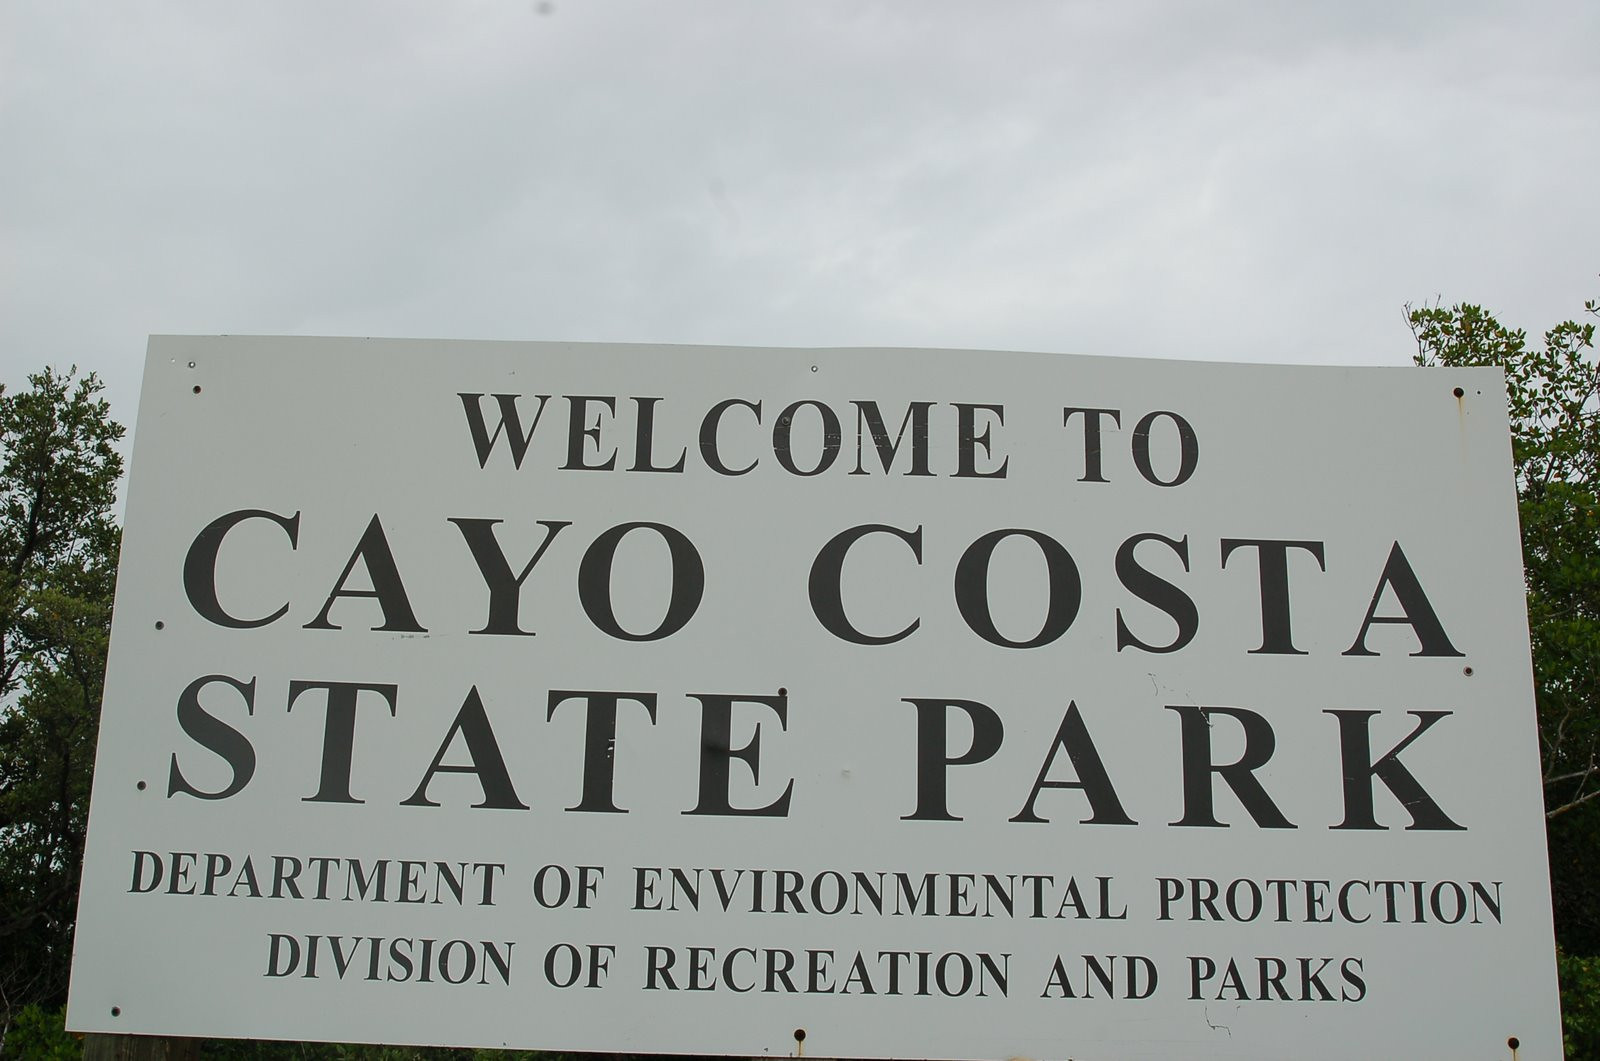 Cayo Costa State Park will be our home base for this adventure.